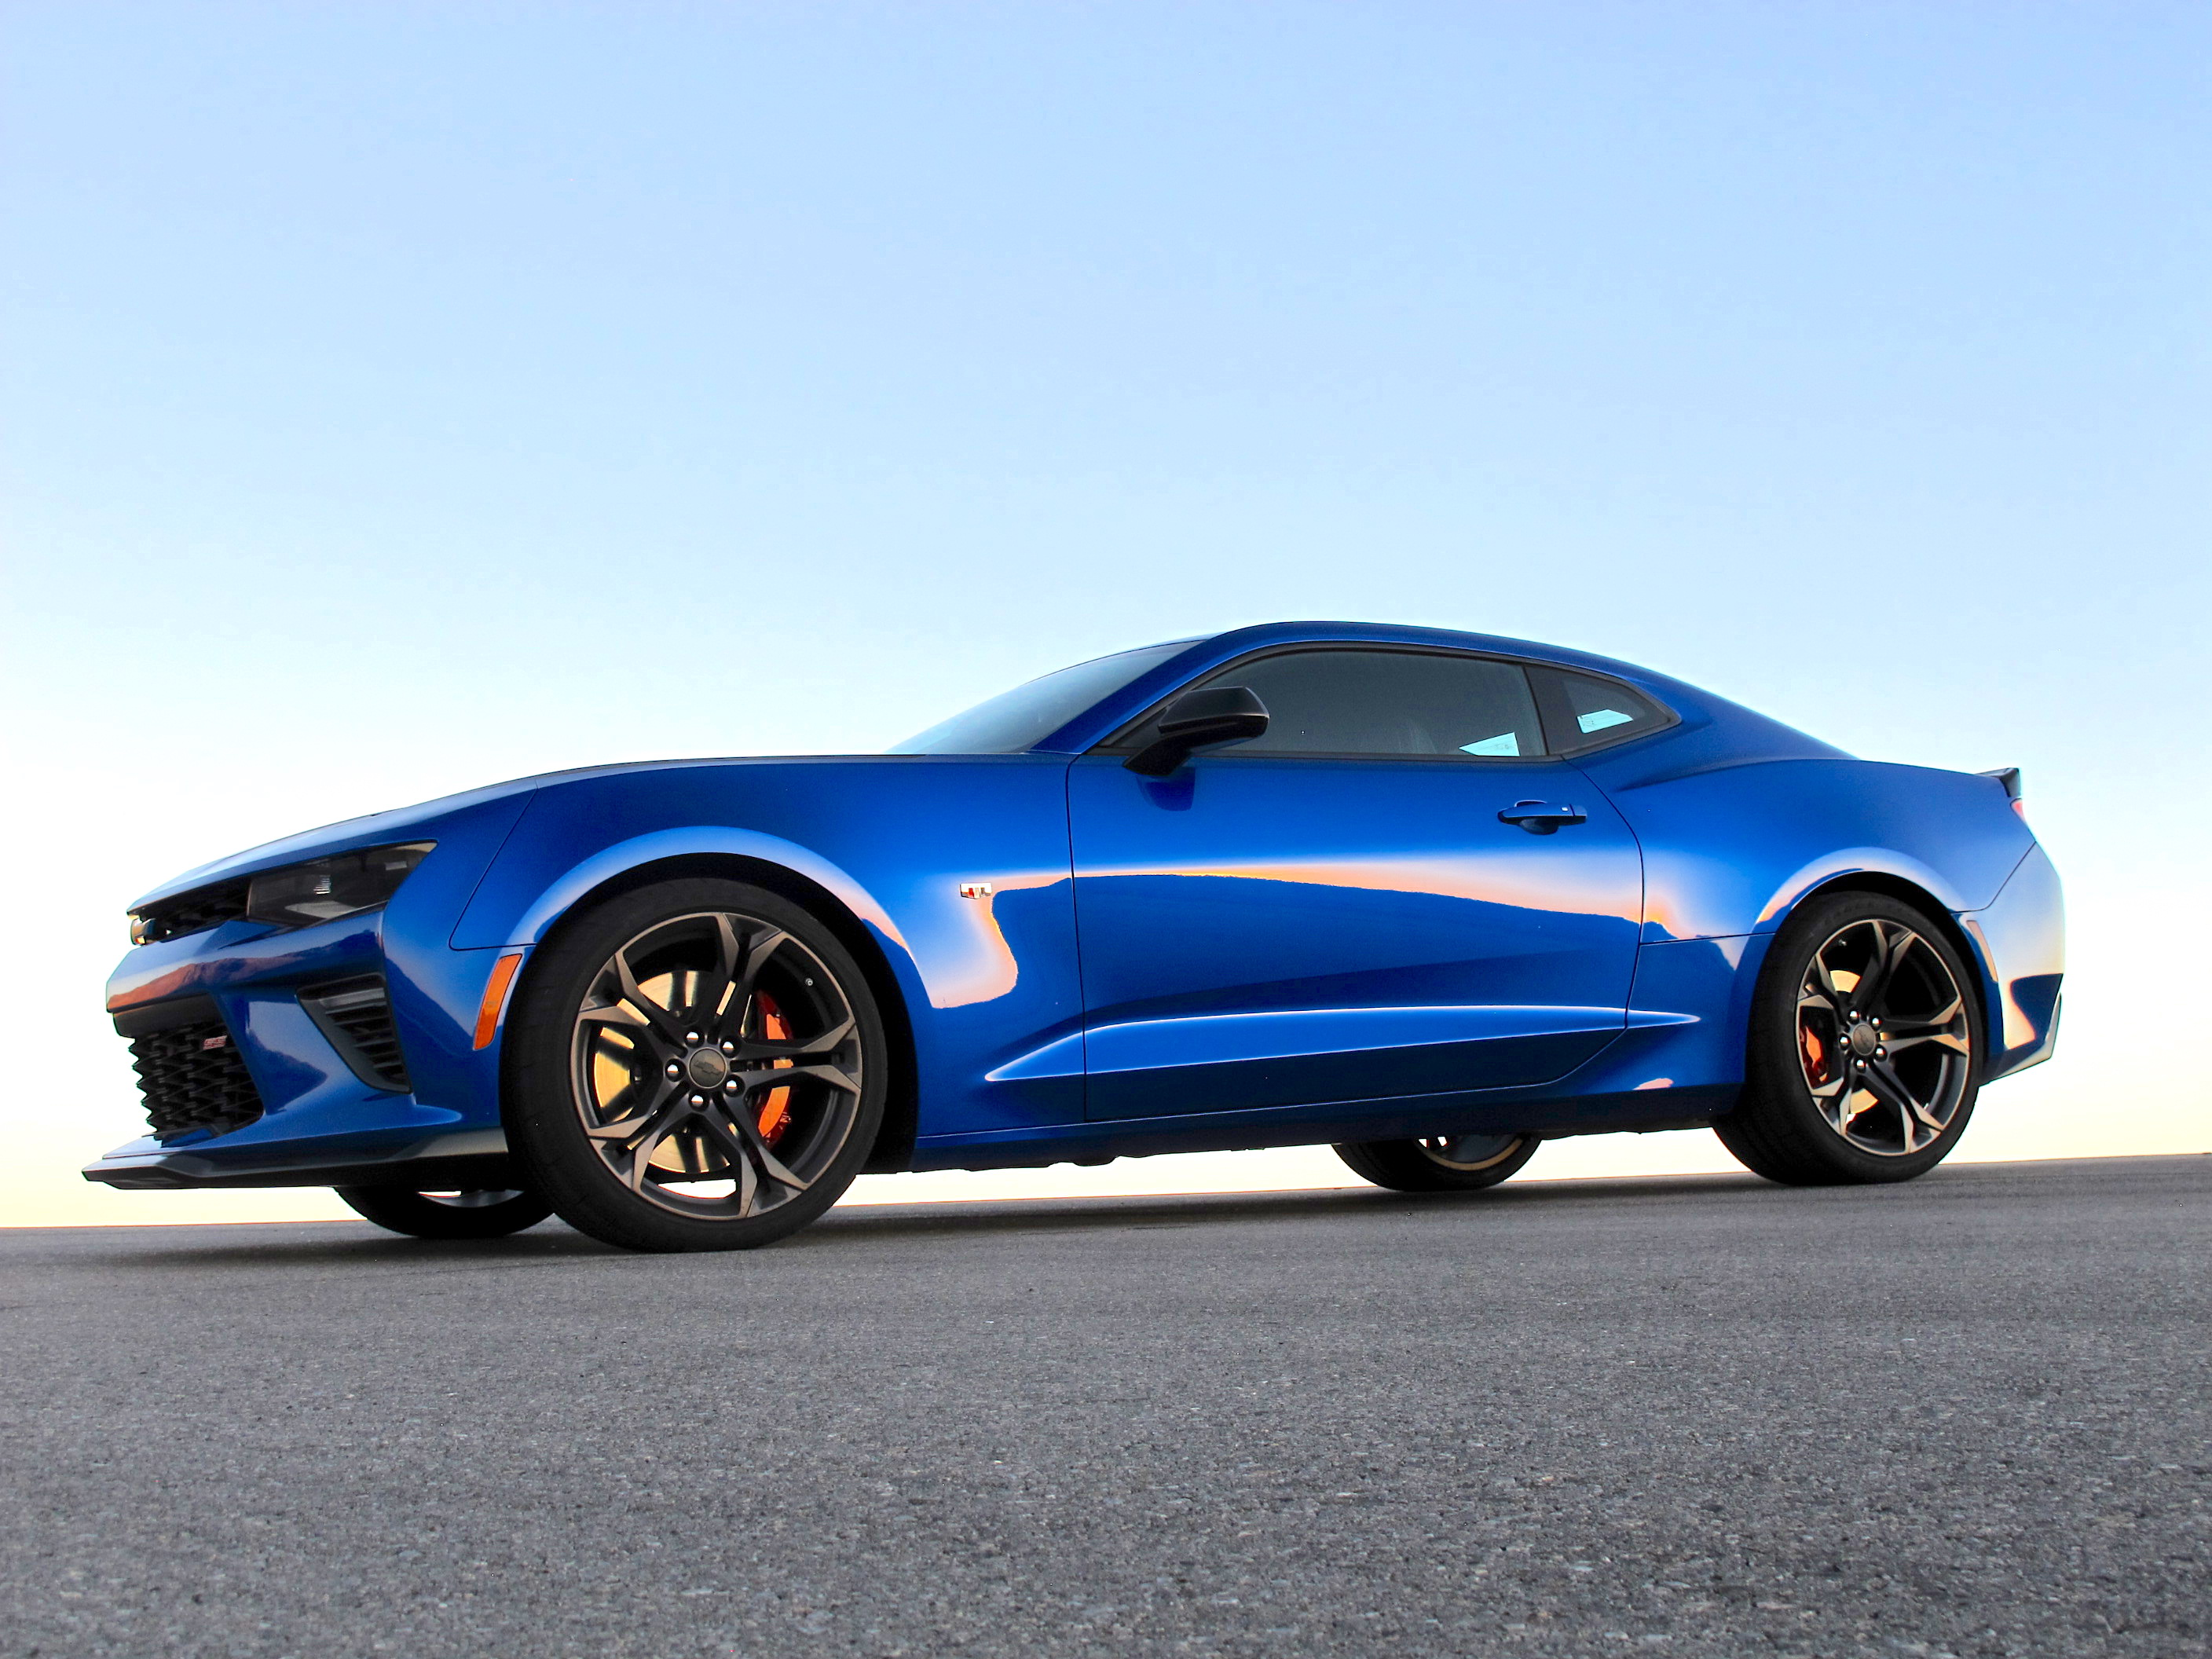 2017 chevrolet camaro 1le first drive review more than a track package. Black Bedroom Furniture Sets. Home Design Ideas